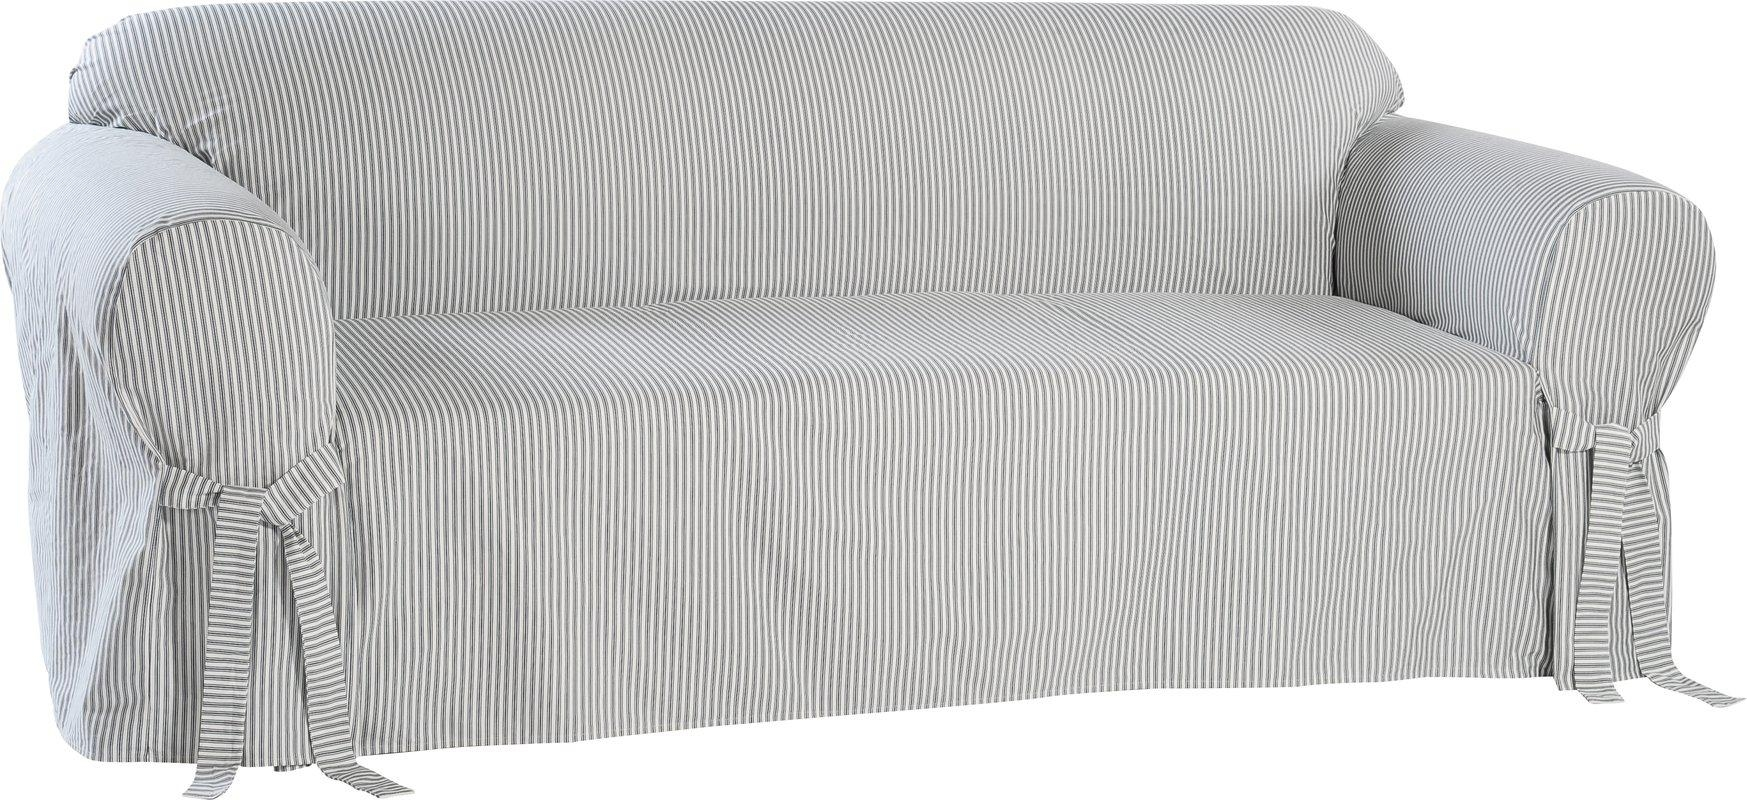 Classic Slipcovers Stripe Twill Sofa Slipcover & Reviews | Wayfair With Striped Sofa Slipcovers (Image 3 of 20)